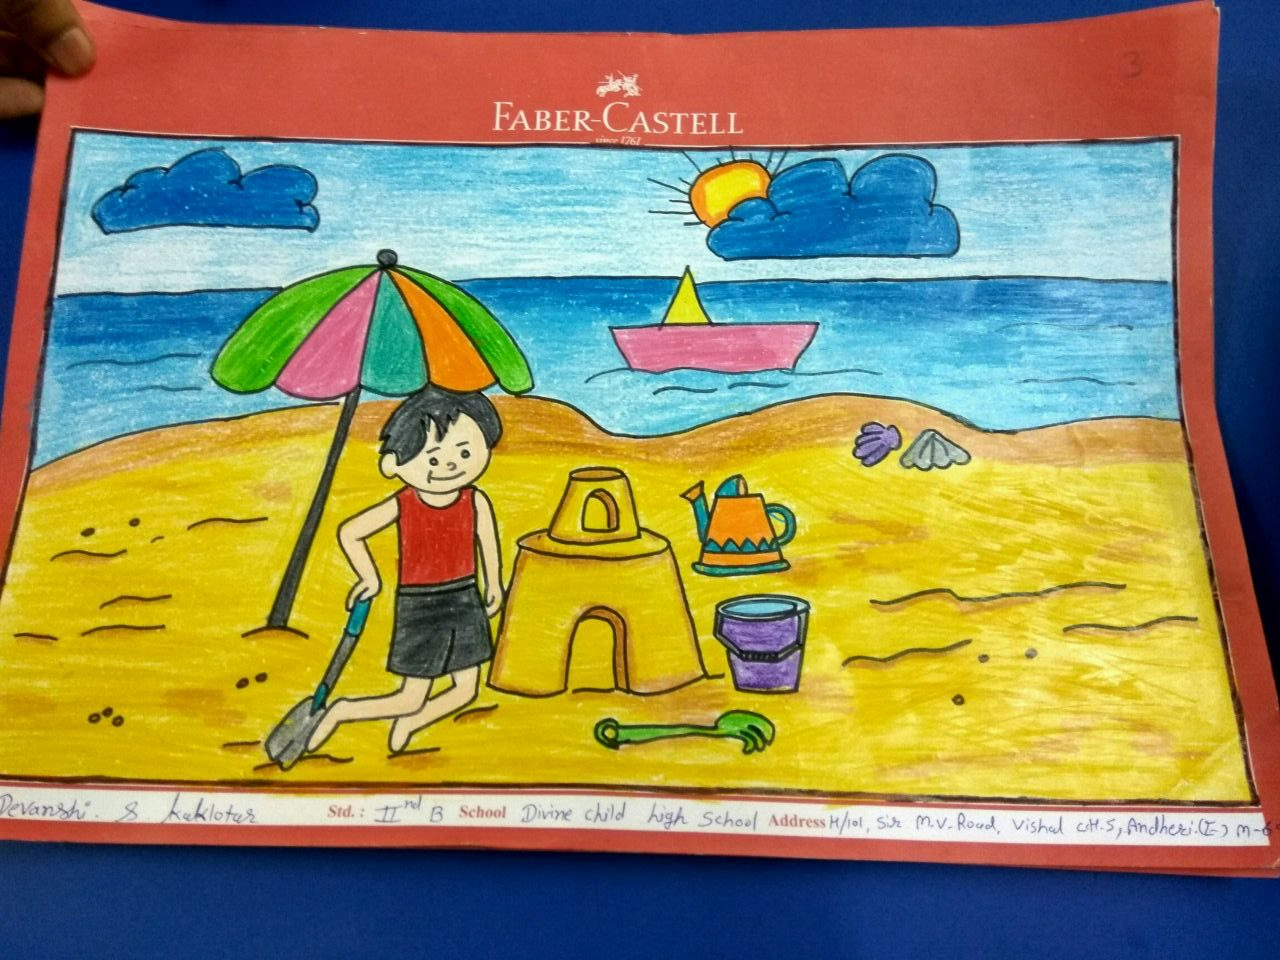 Faber Castell Calendar Art Competition : Faber castell drawing competition divine child senior